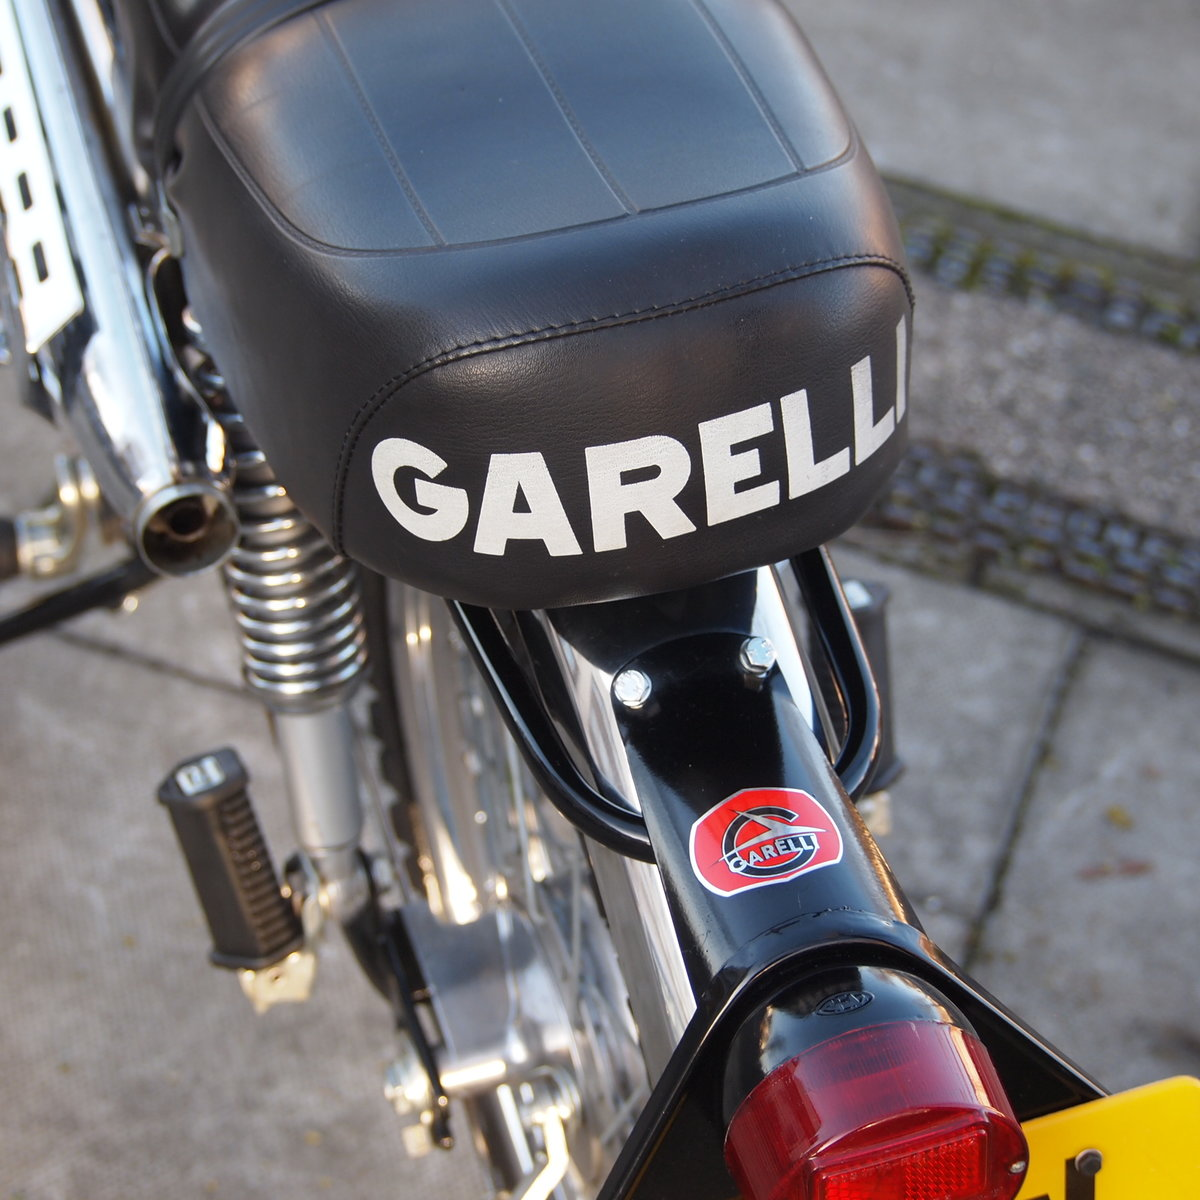 1975 Rare Radial Cylinder Head Garelli Tiger Cross With Pedals SOLD (picture 3 of 6)